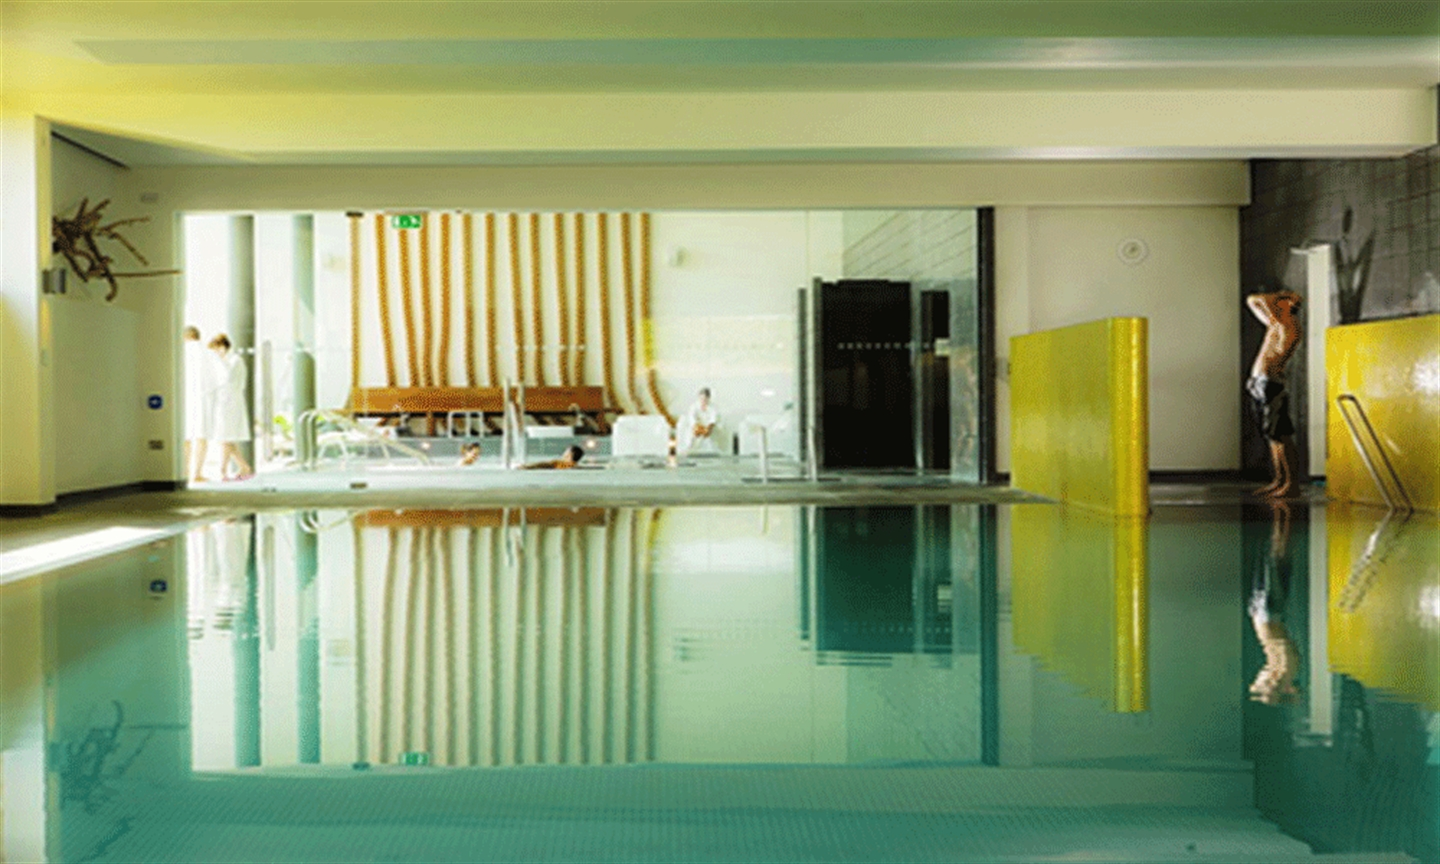 SpaSeekers • Spa Days and Breaks near Royal Tunbridge Wells, Kent